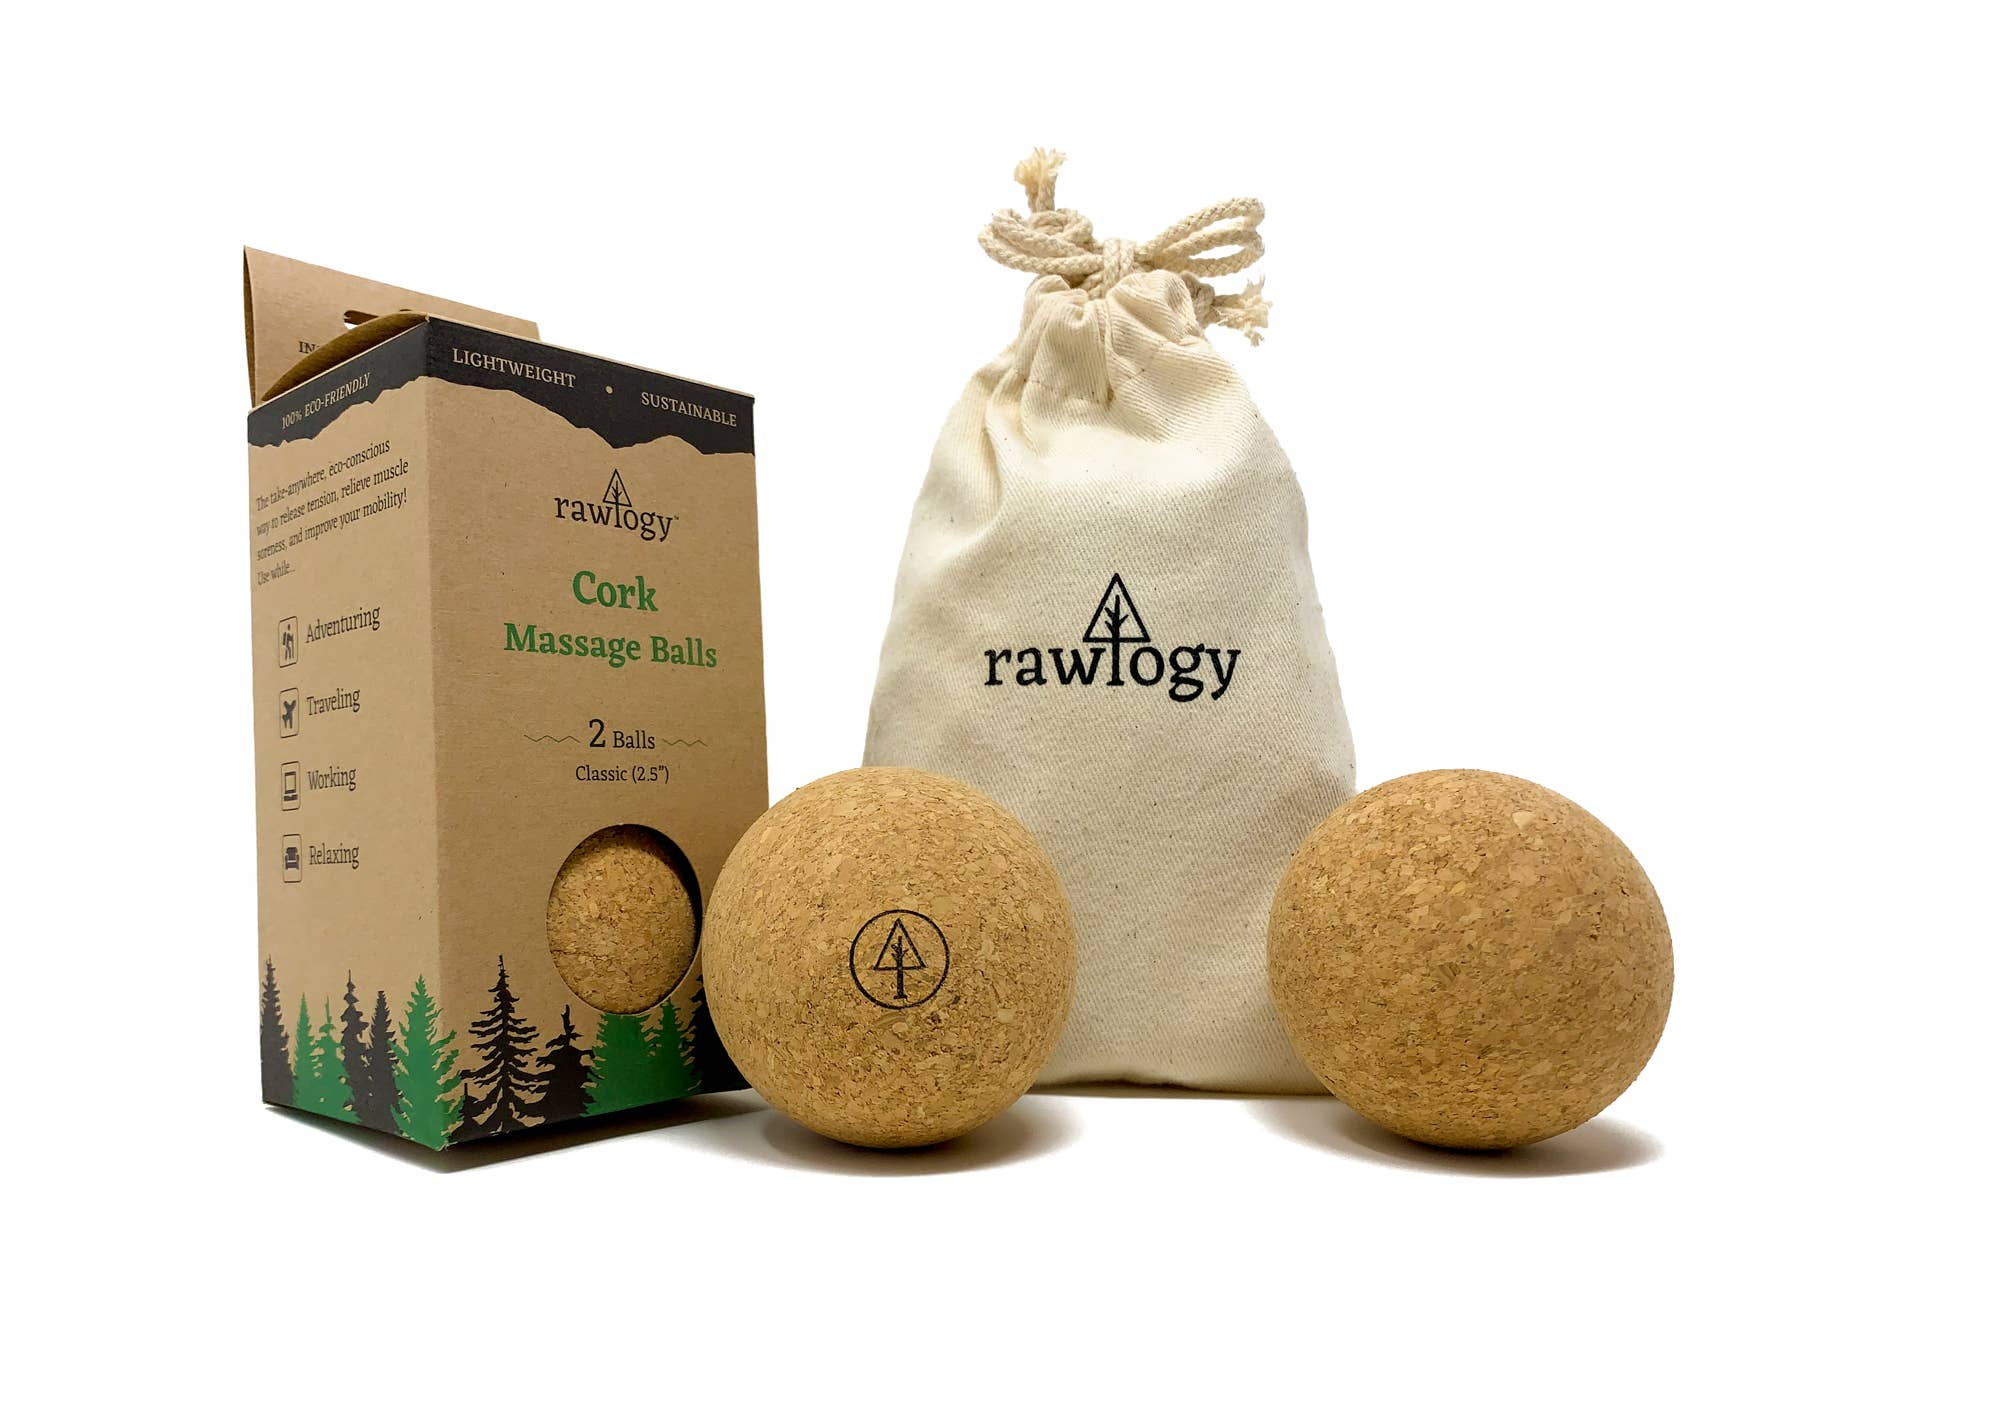 Rawlogy cork massage balls 1